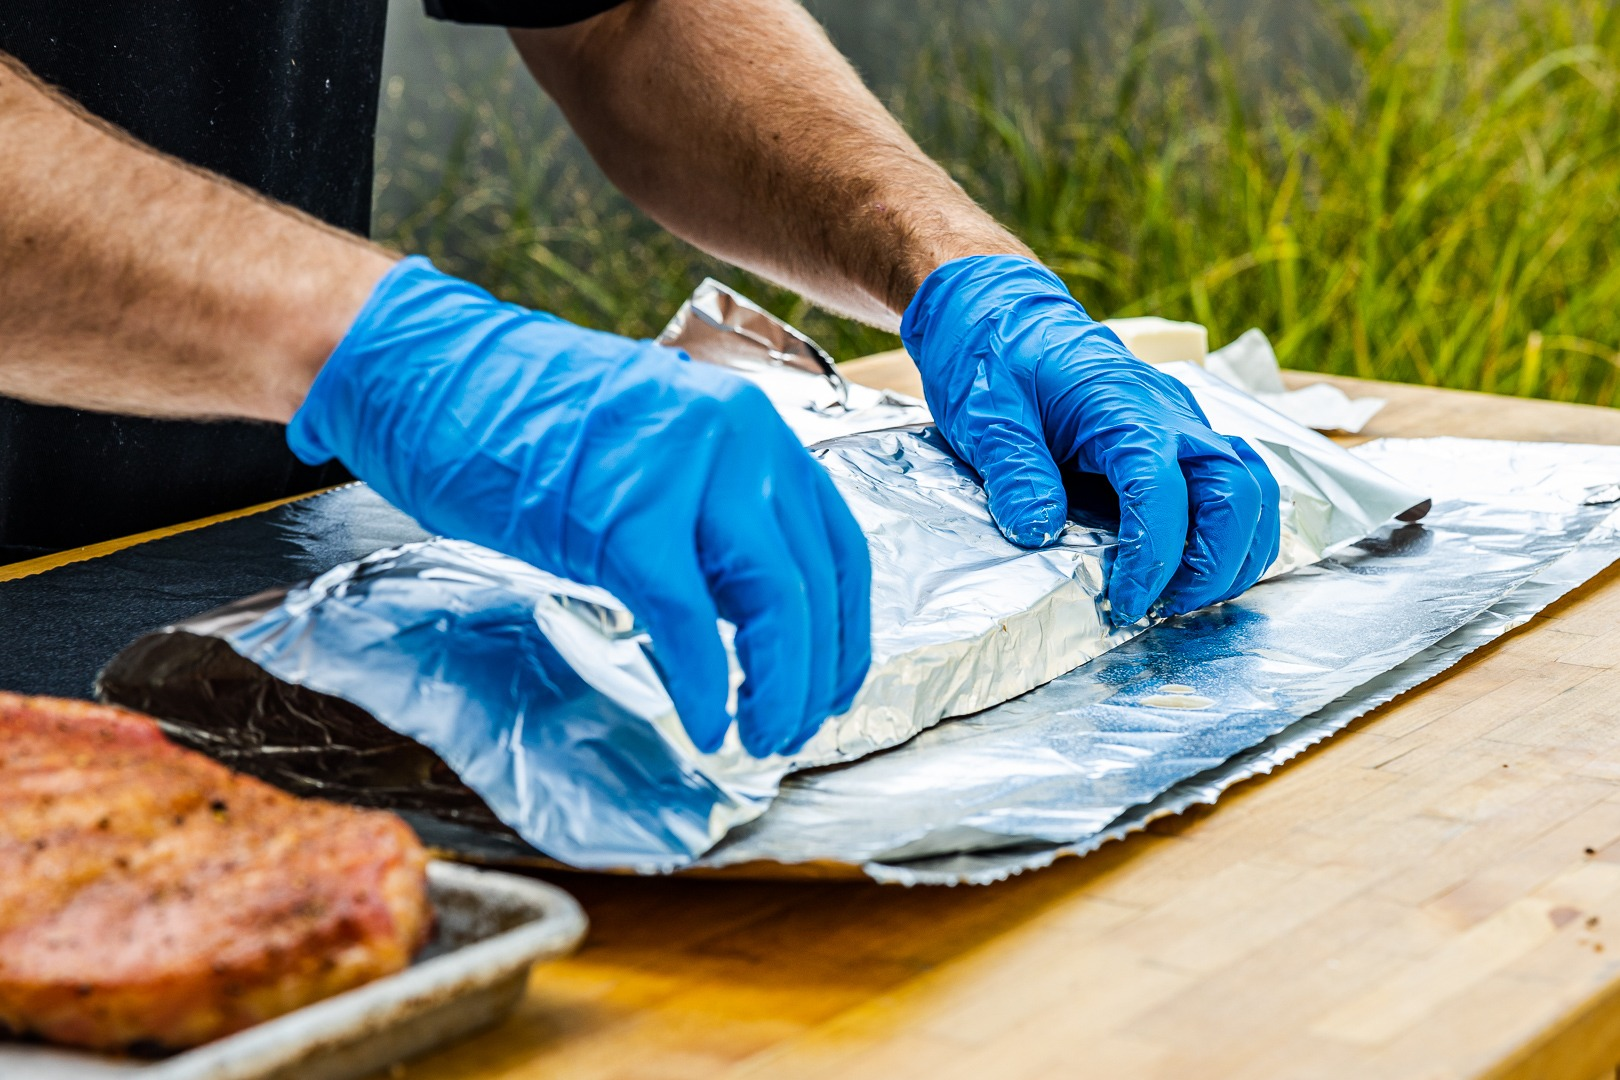 wrapping ribs in foil, doubling over the end bones